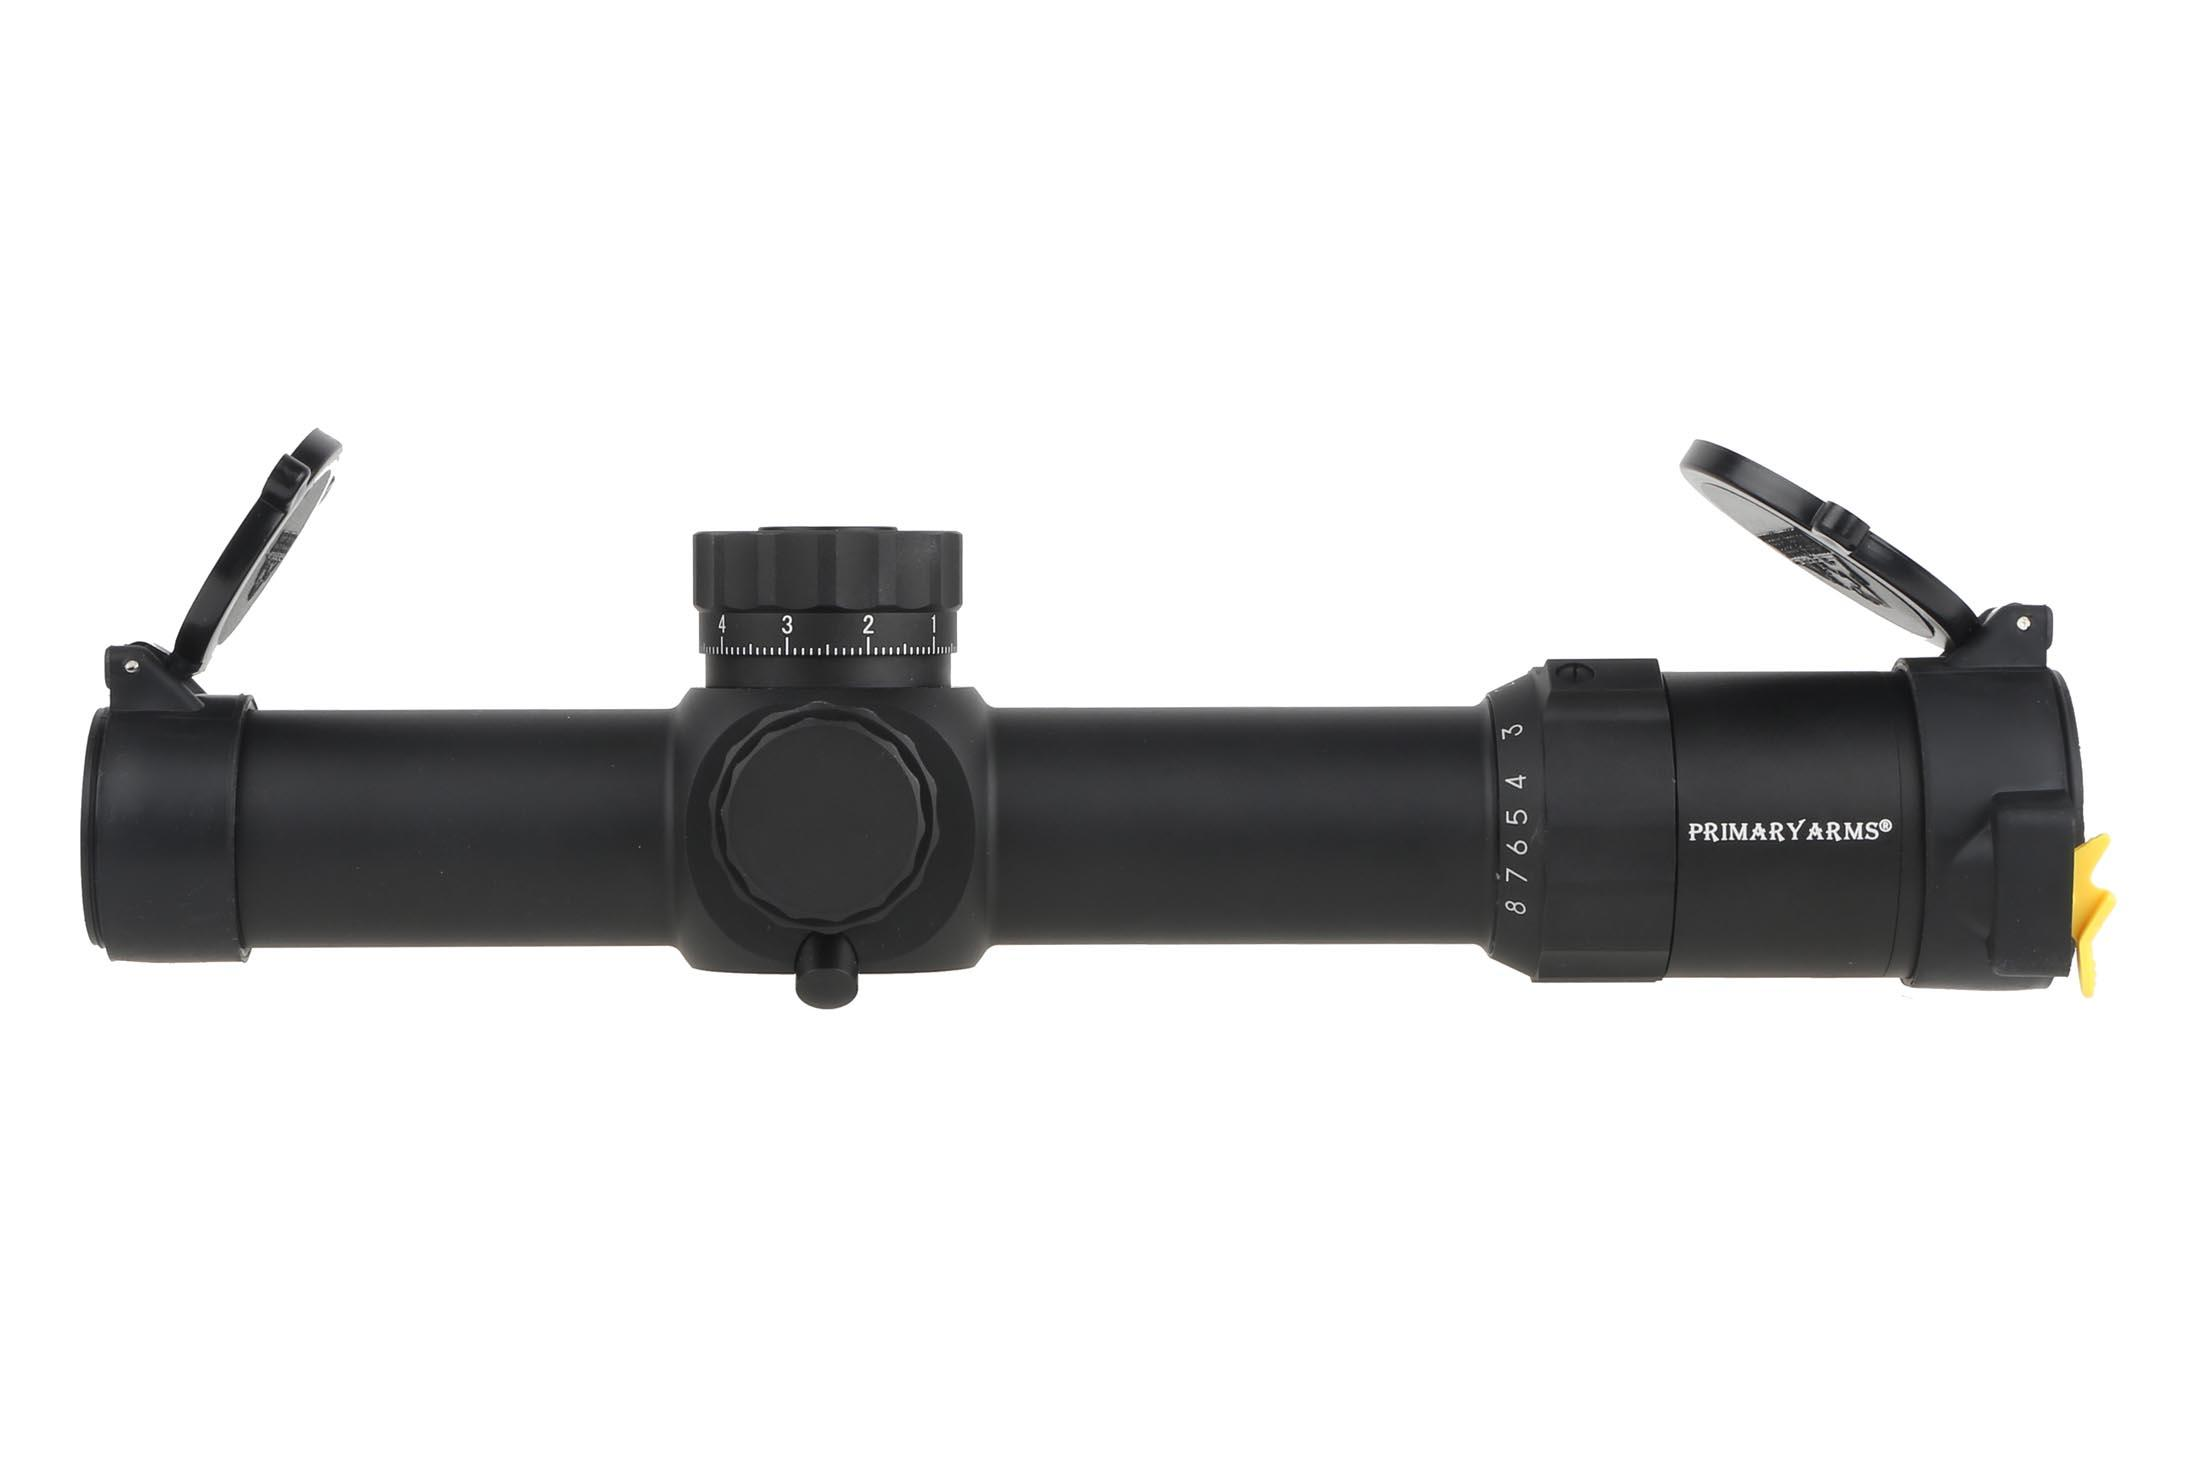 Primary Arms Platinum 1-8X24mm Scope with Patented ACSS 5.56 / 5.45 / .308 Reticle